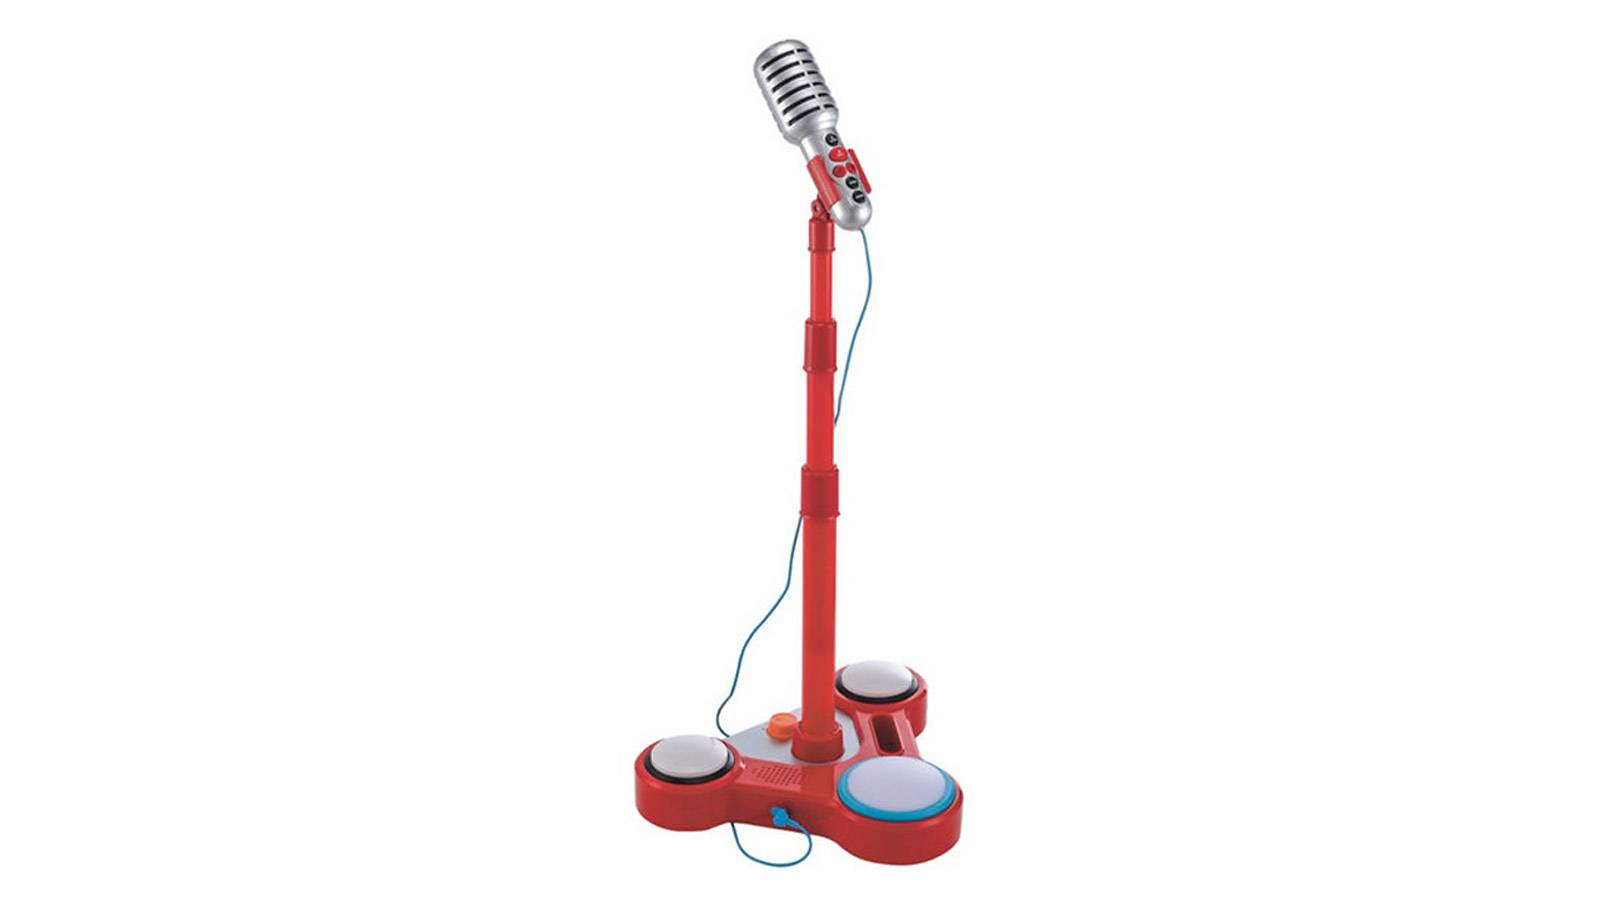 Tots-BUYER'S-GUIDE-9-best-role-playing-toys-for-toddlers-ELC-MICROPHONE